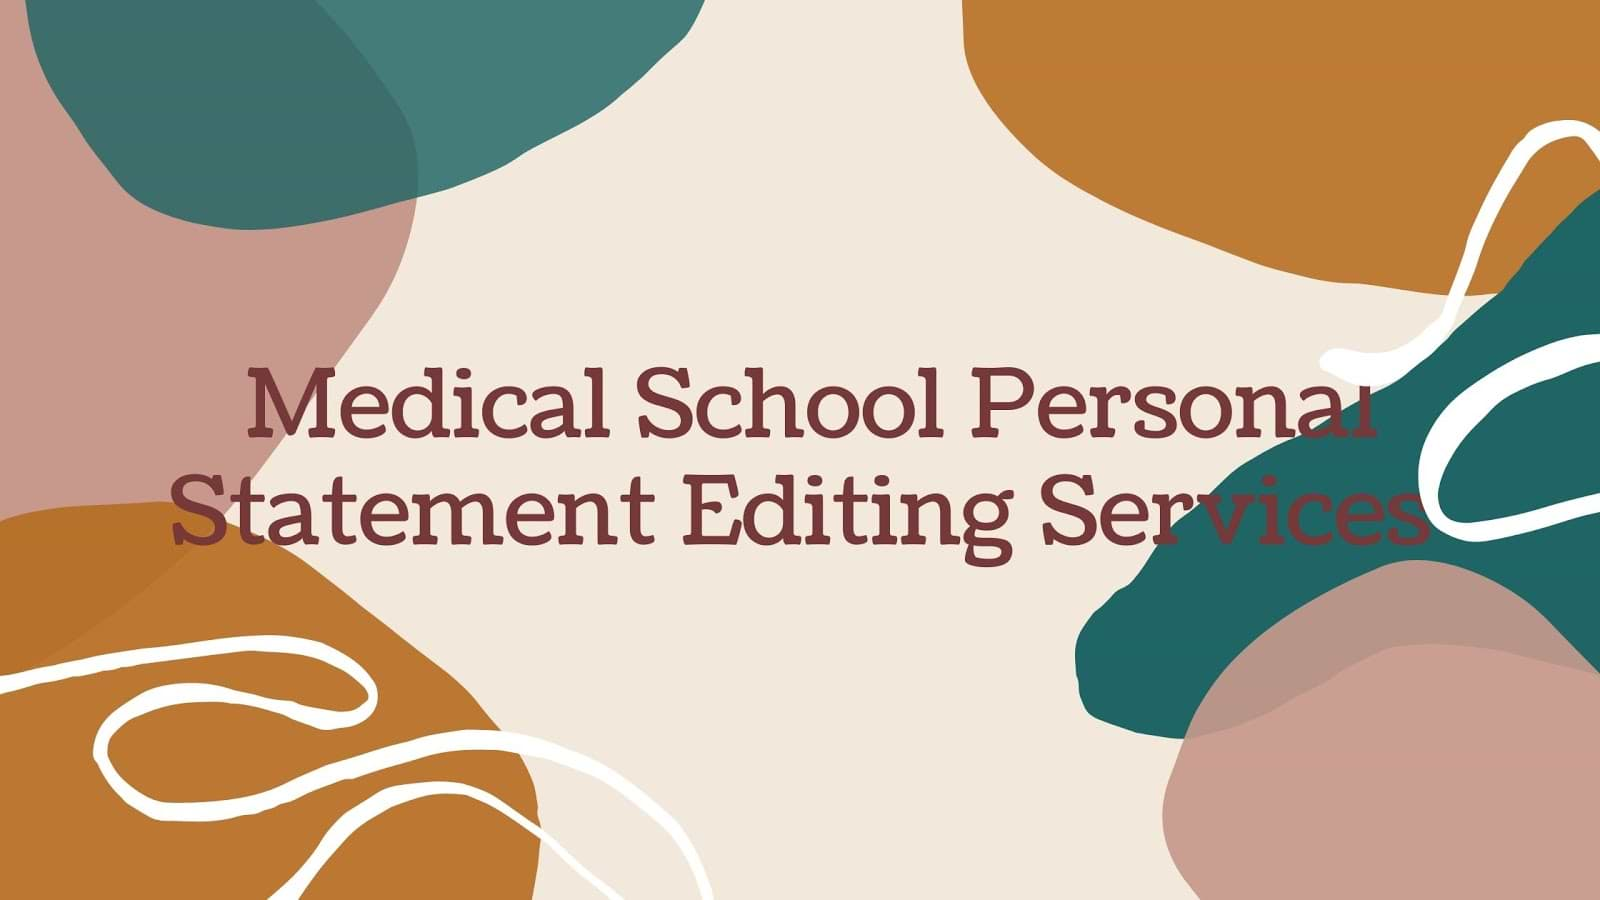 Get Your Prominent Medical School Personal Statement With Best Editing Services